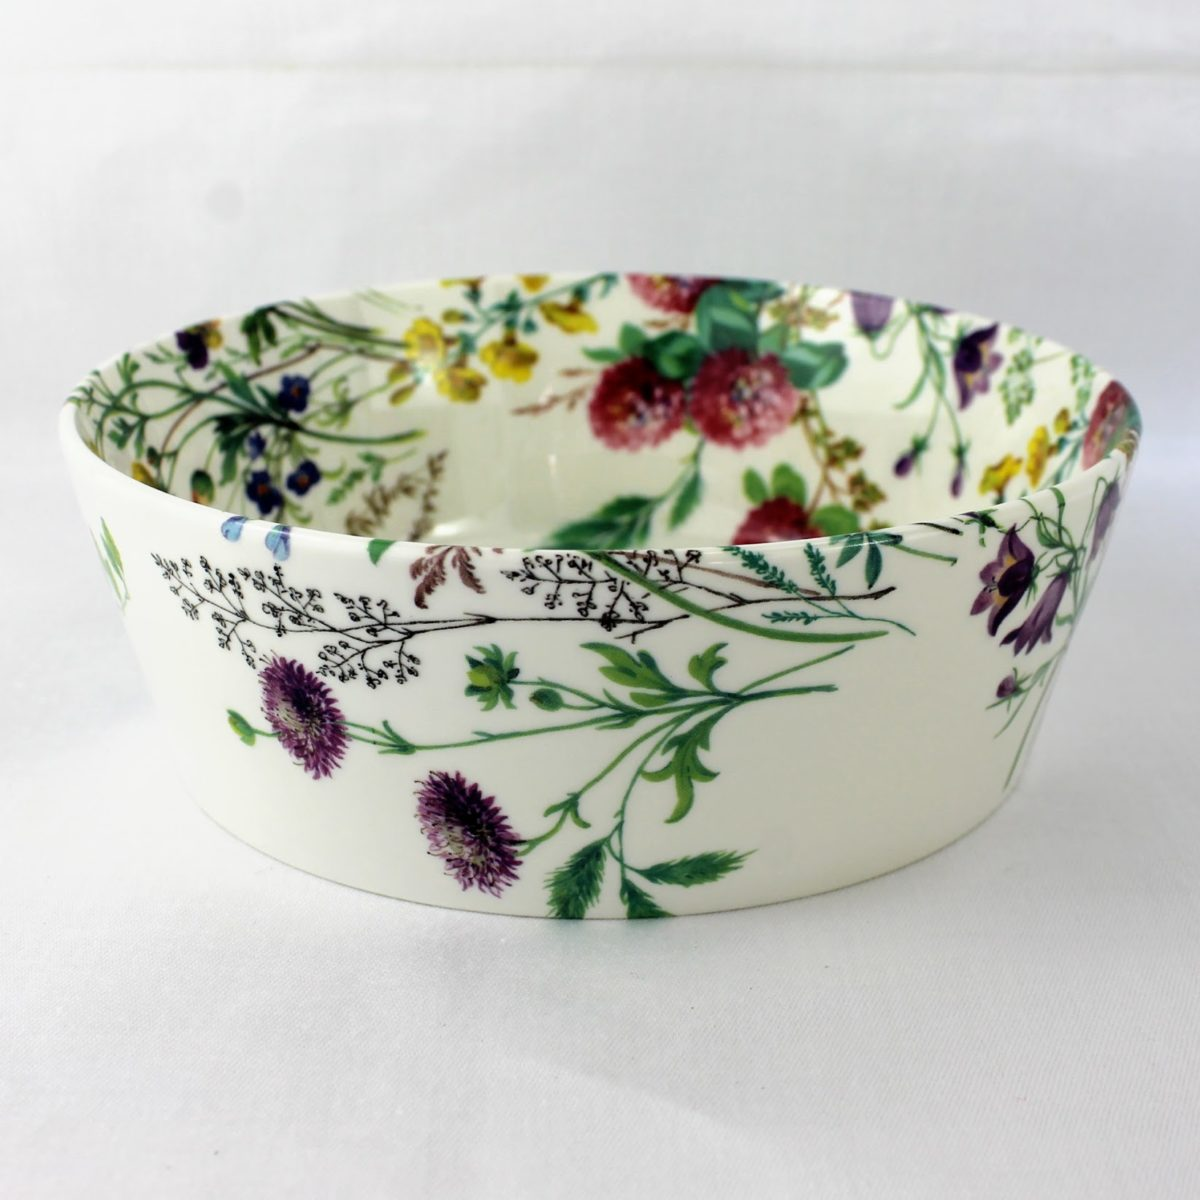 Field Flowers Serving Bowl 6 Rob Turner China Designs